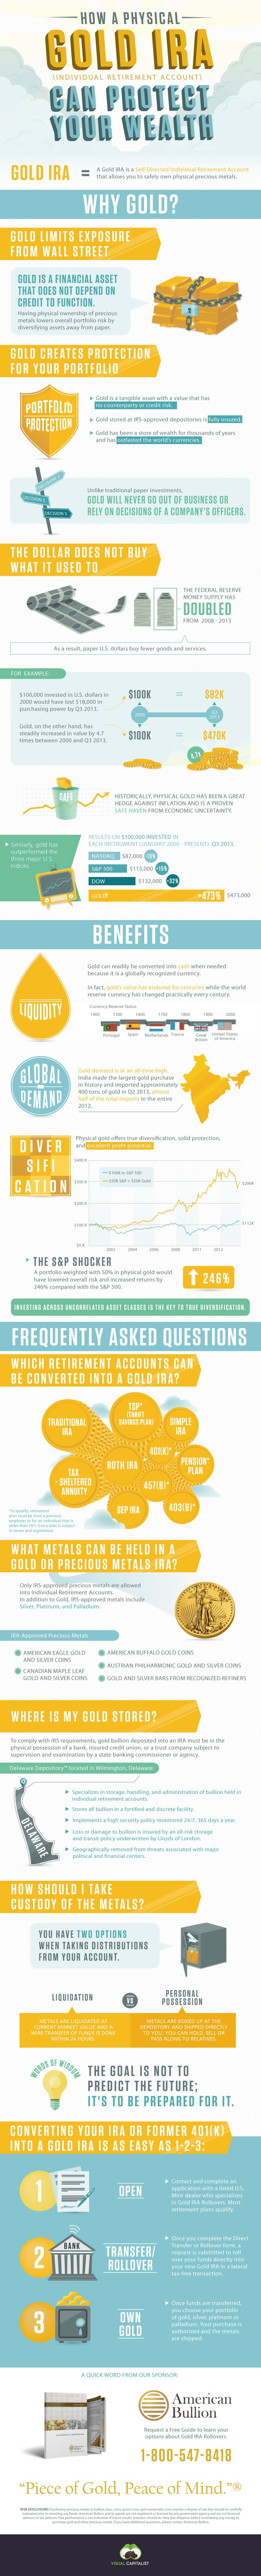 Retirement Investing in Gold-Infographic